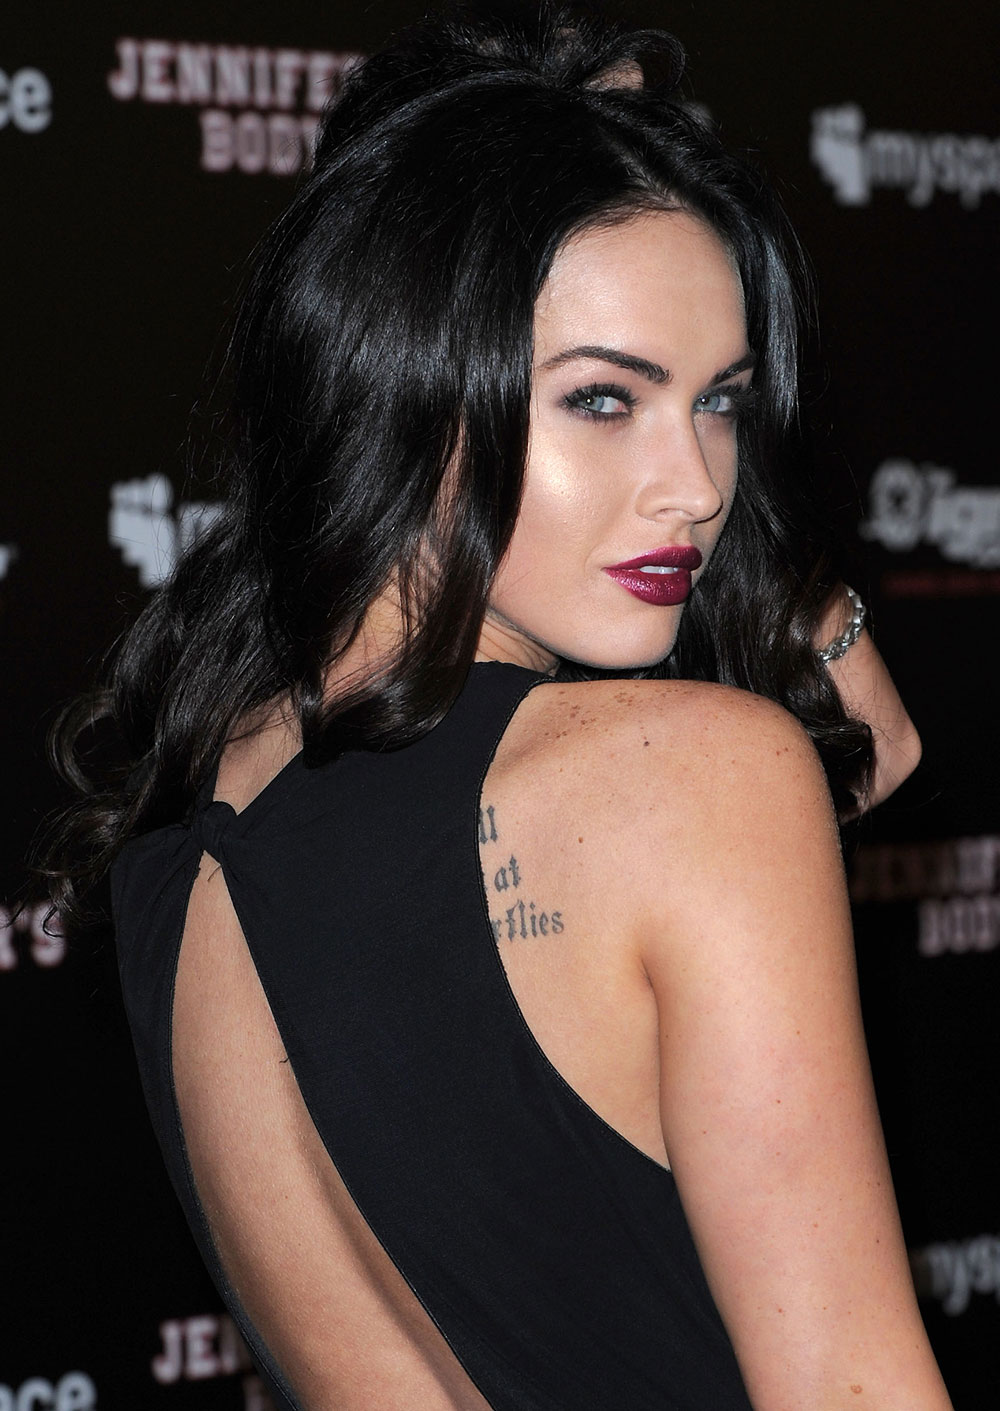 megan fox makeup how to. Celebrity Makeup: Megan Fox at